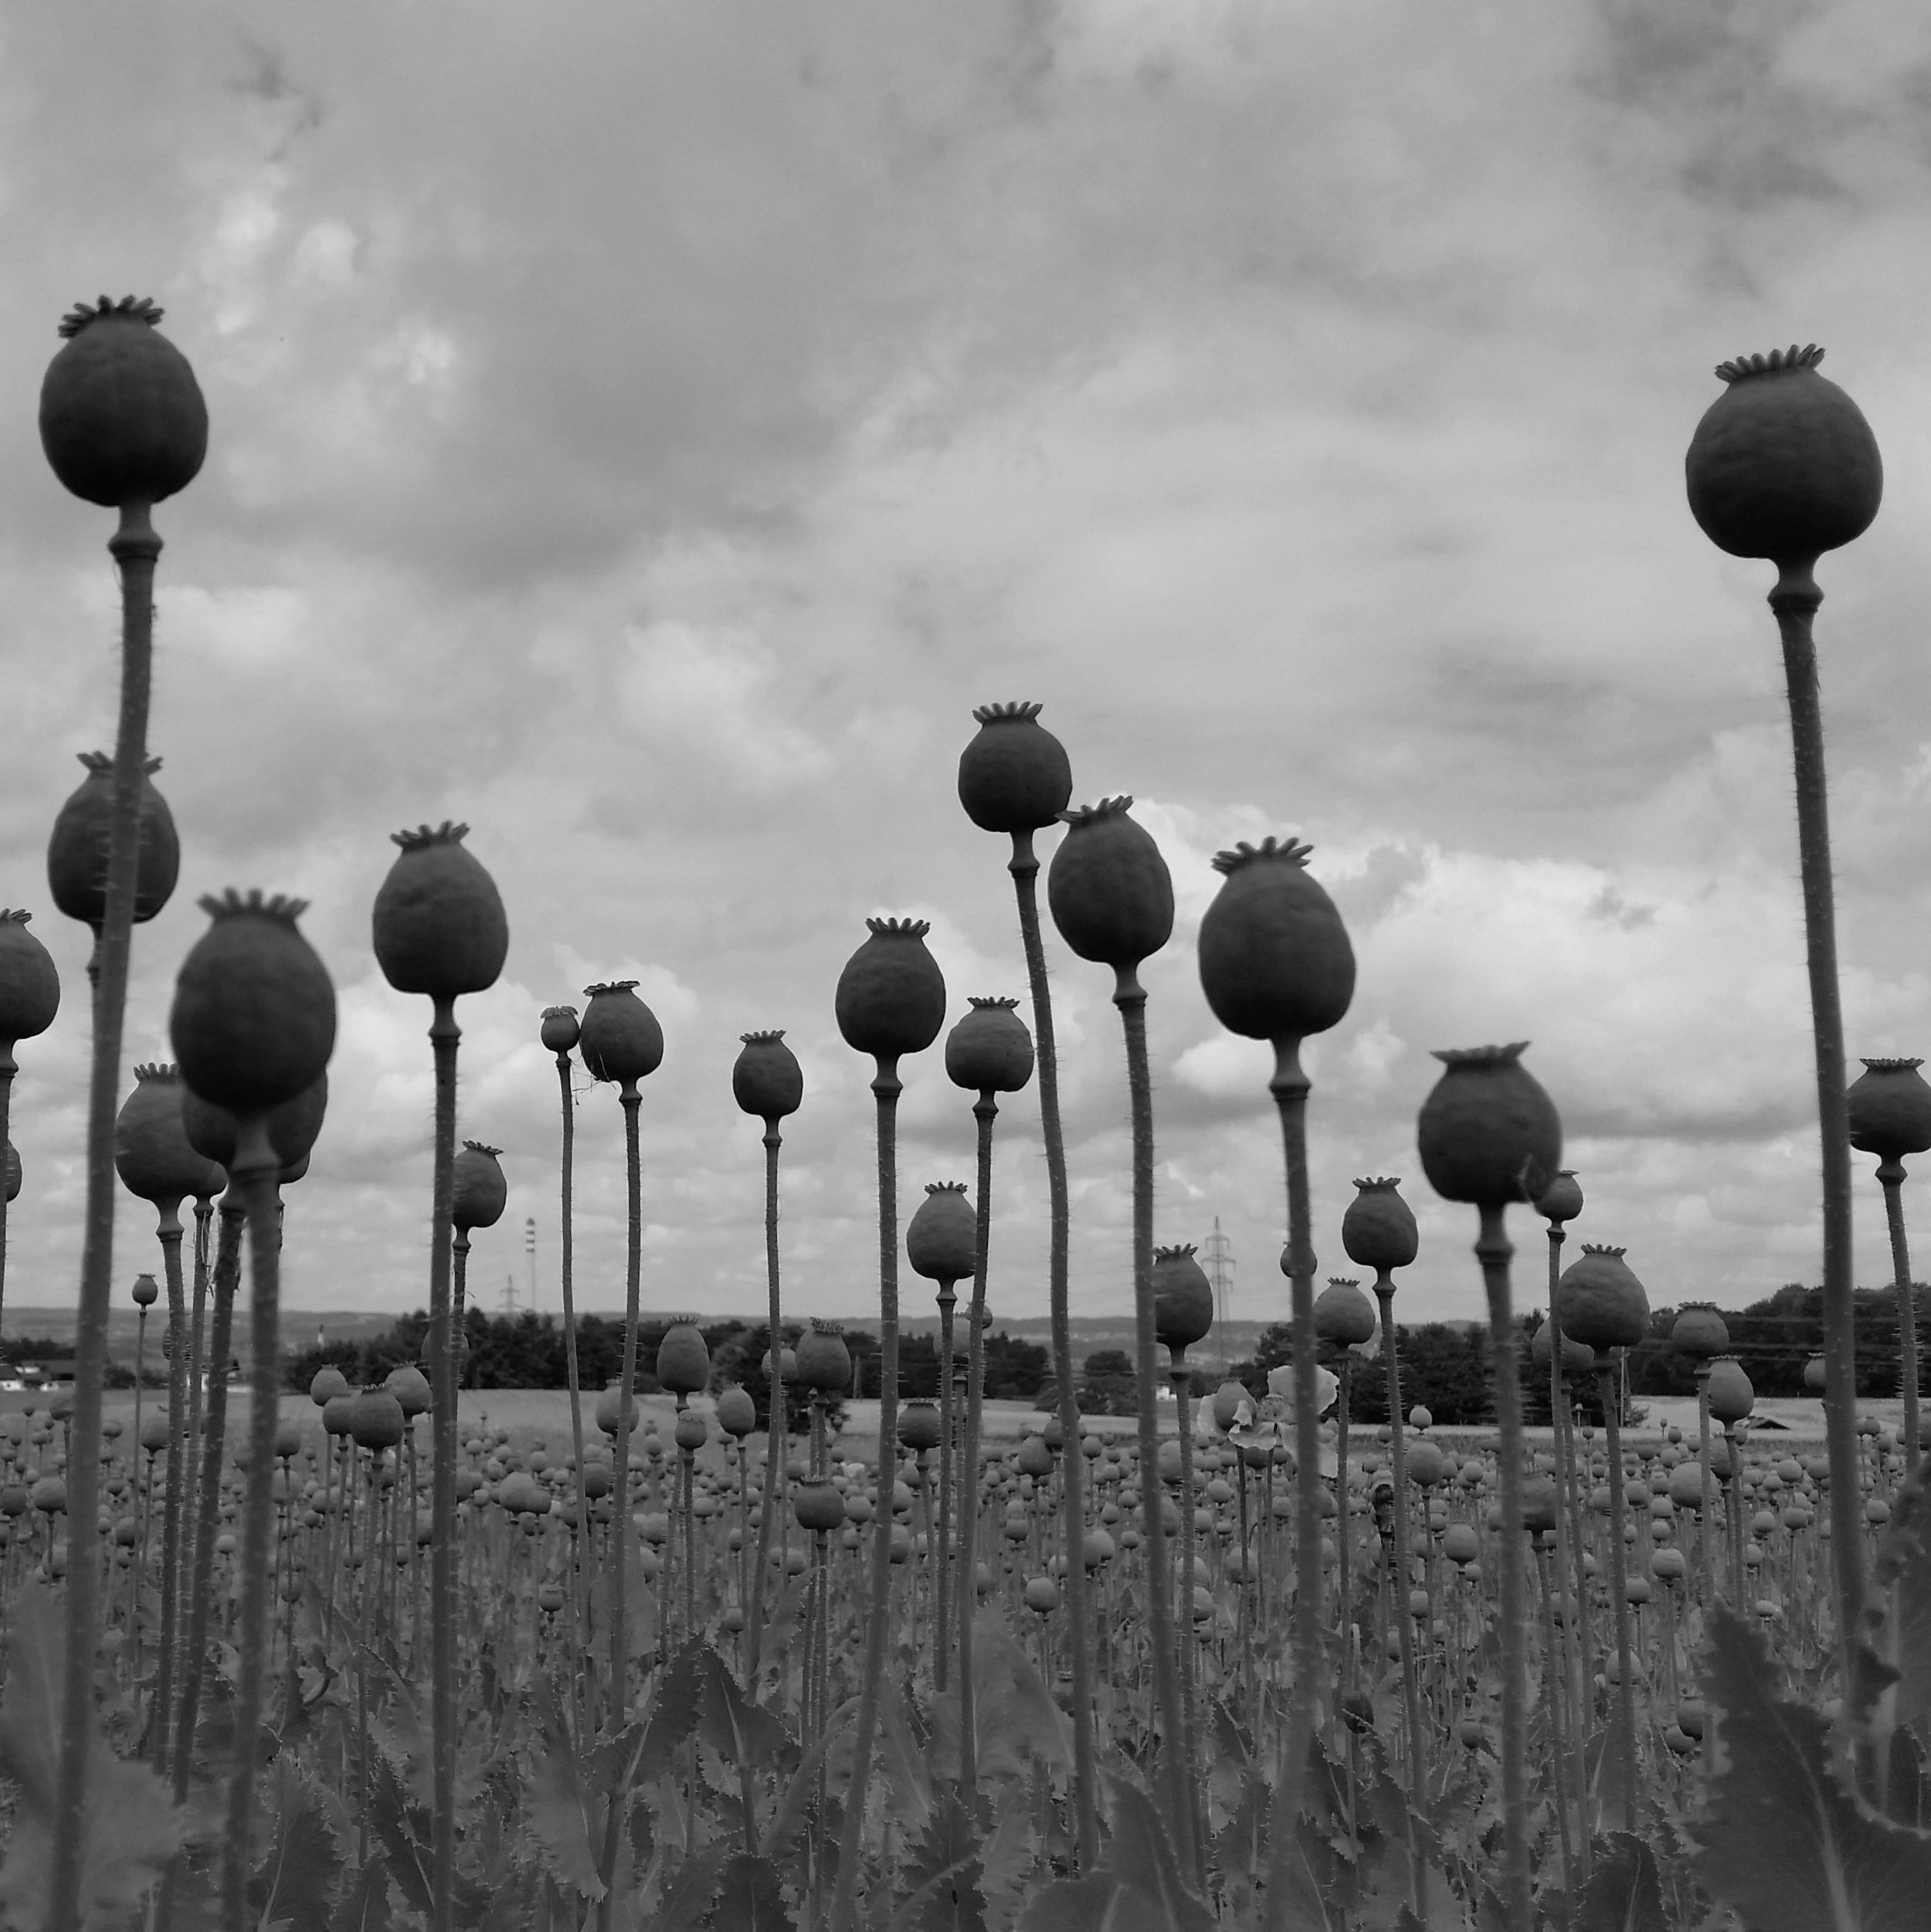 The black-and-white photograph is taken from low to the ground, so the viewer looks up toward the poppy buds and the clouds above. The poppies seem to tower above, and a field of them spreads at least 100 feet into the background.